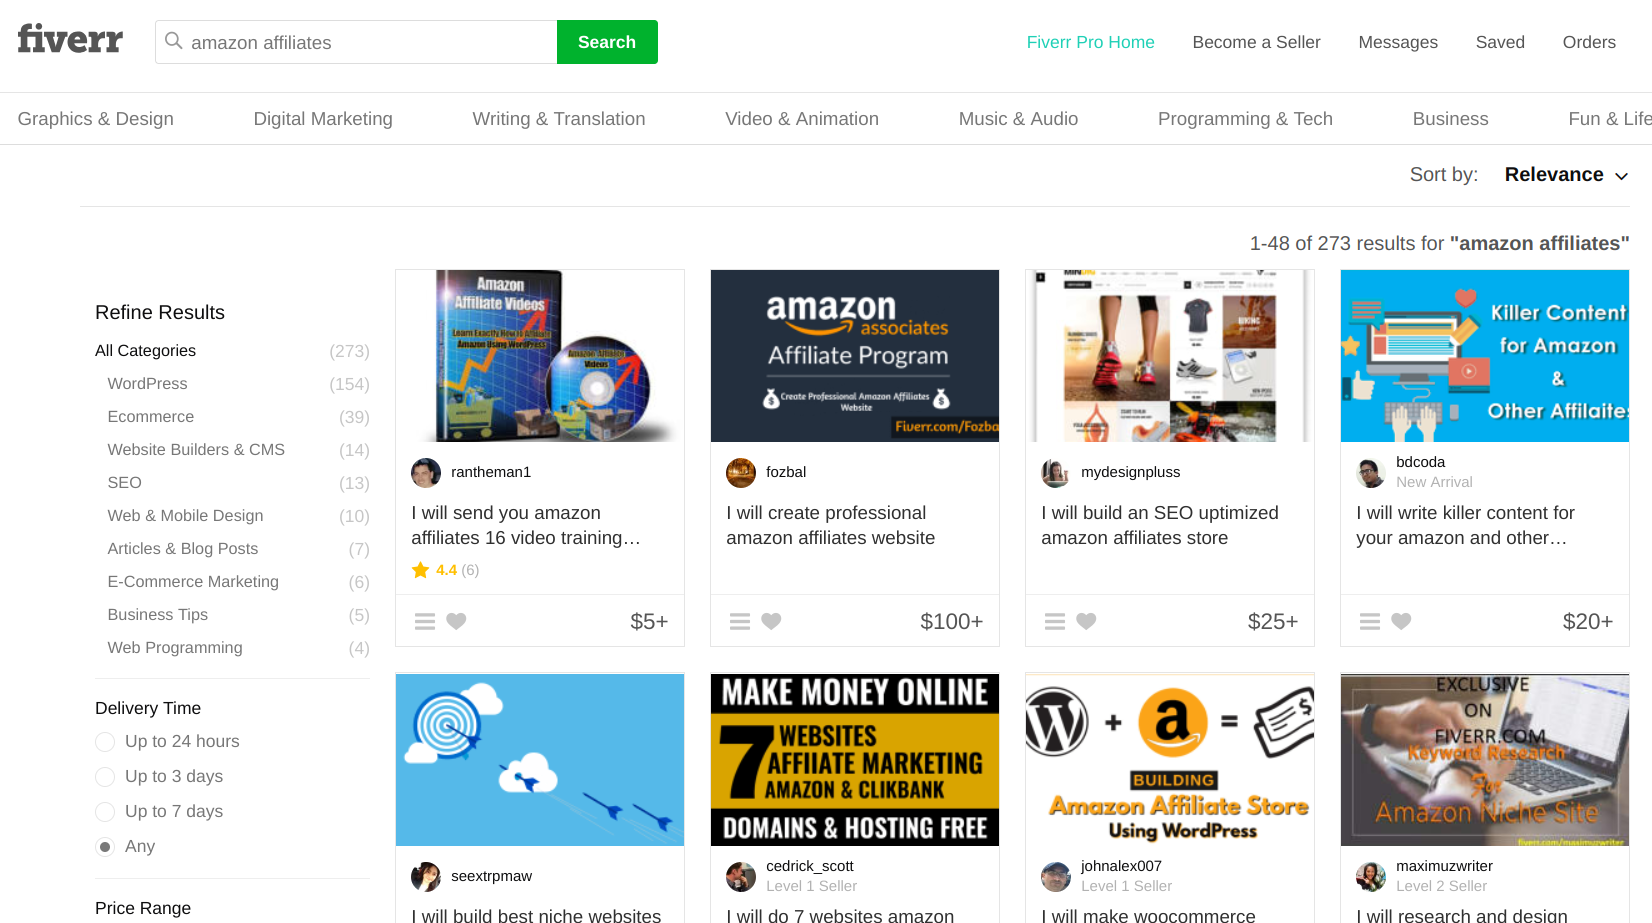 Amazon affiliate program -- Fiverr freelance pros